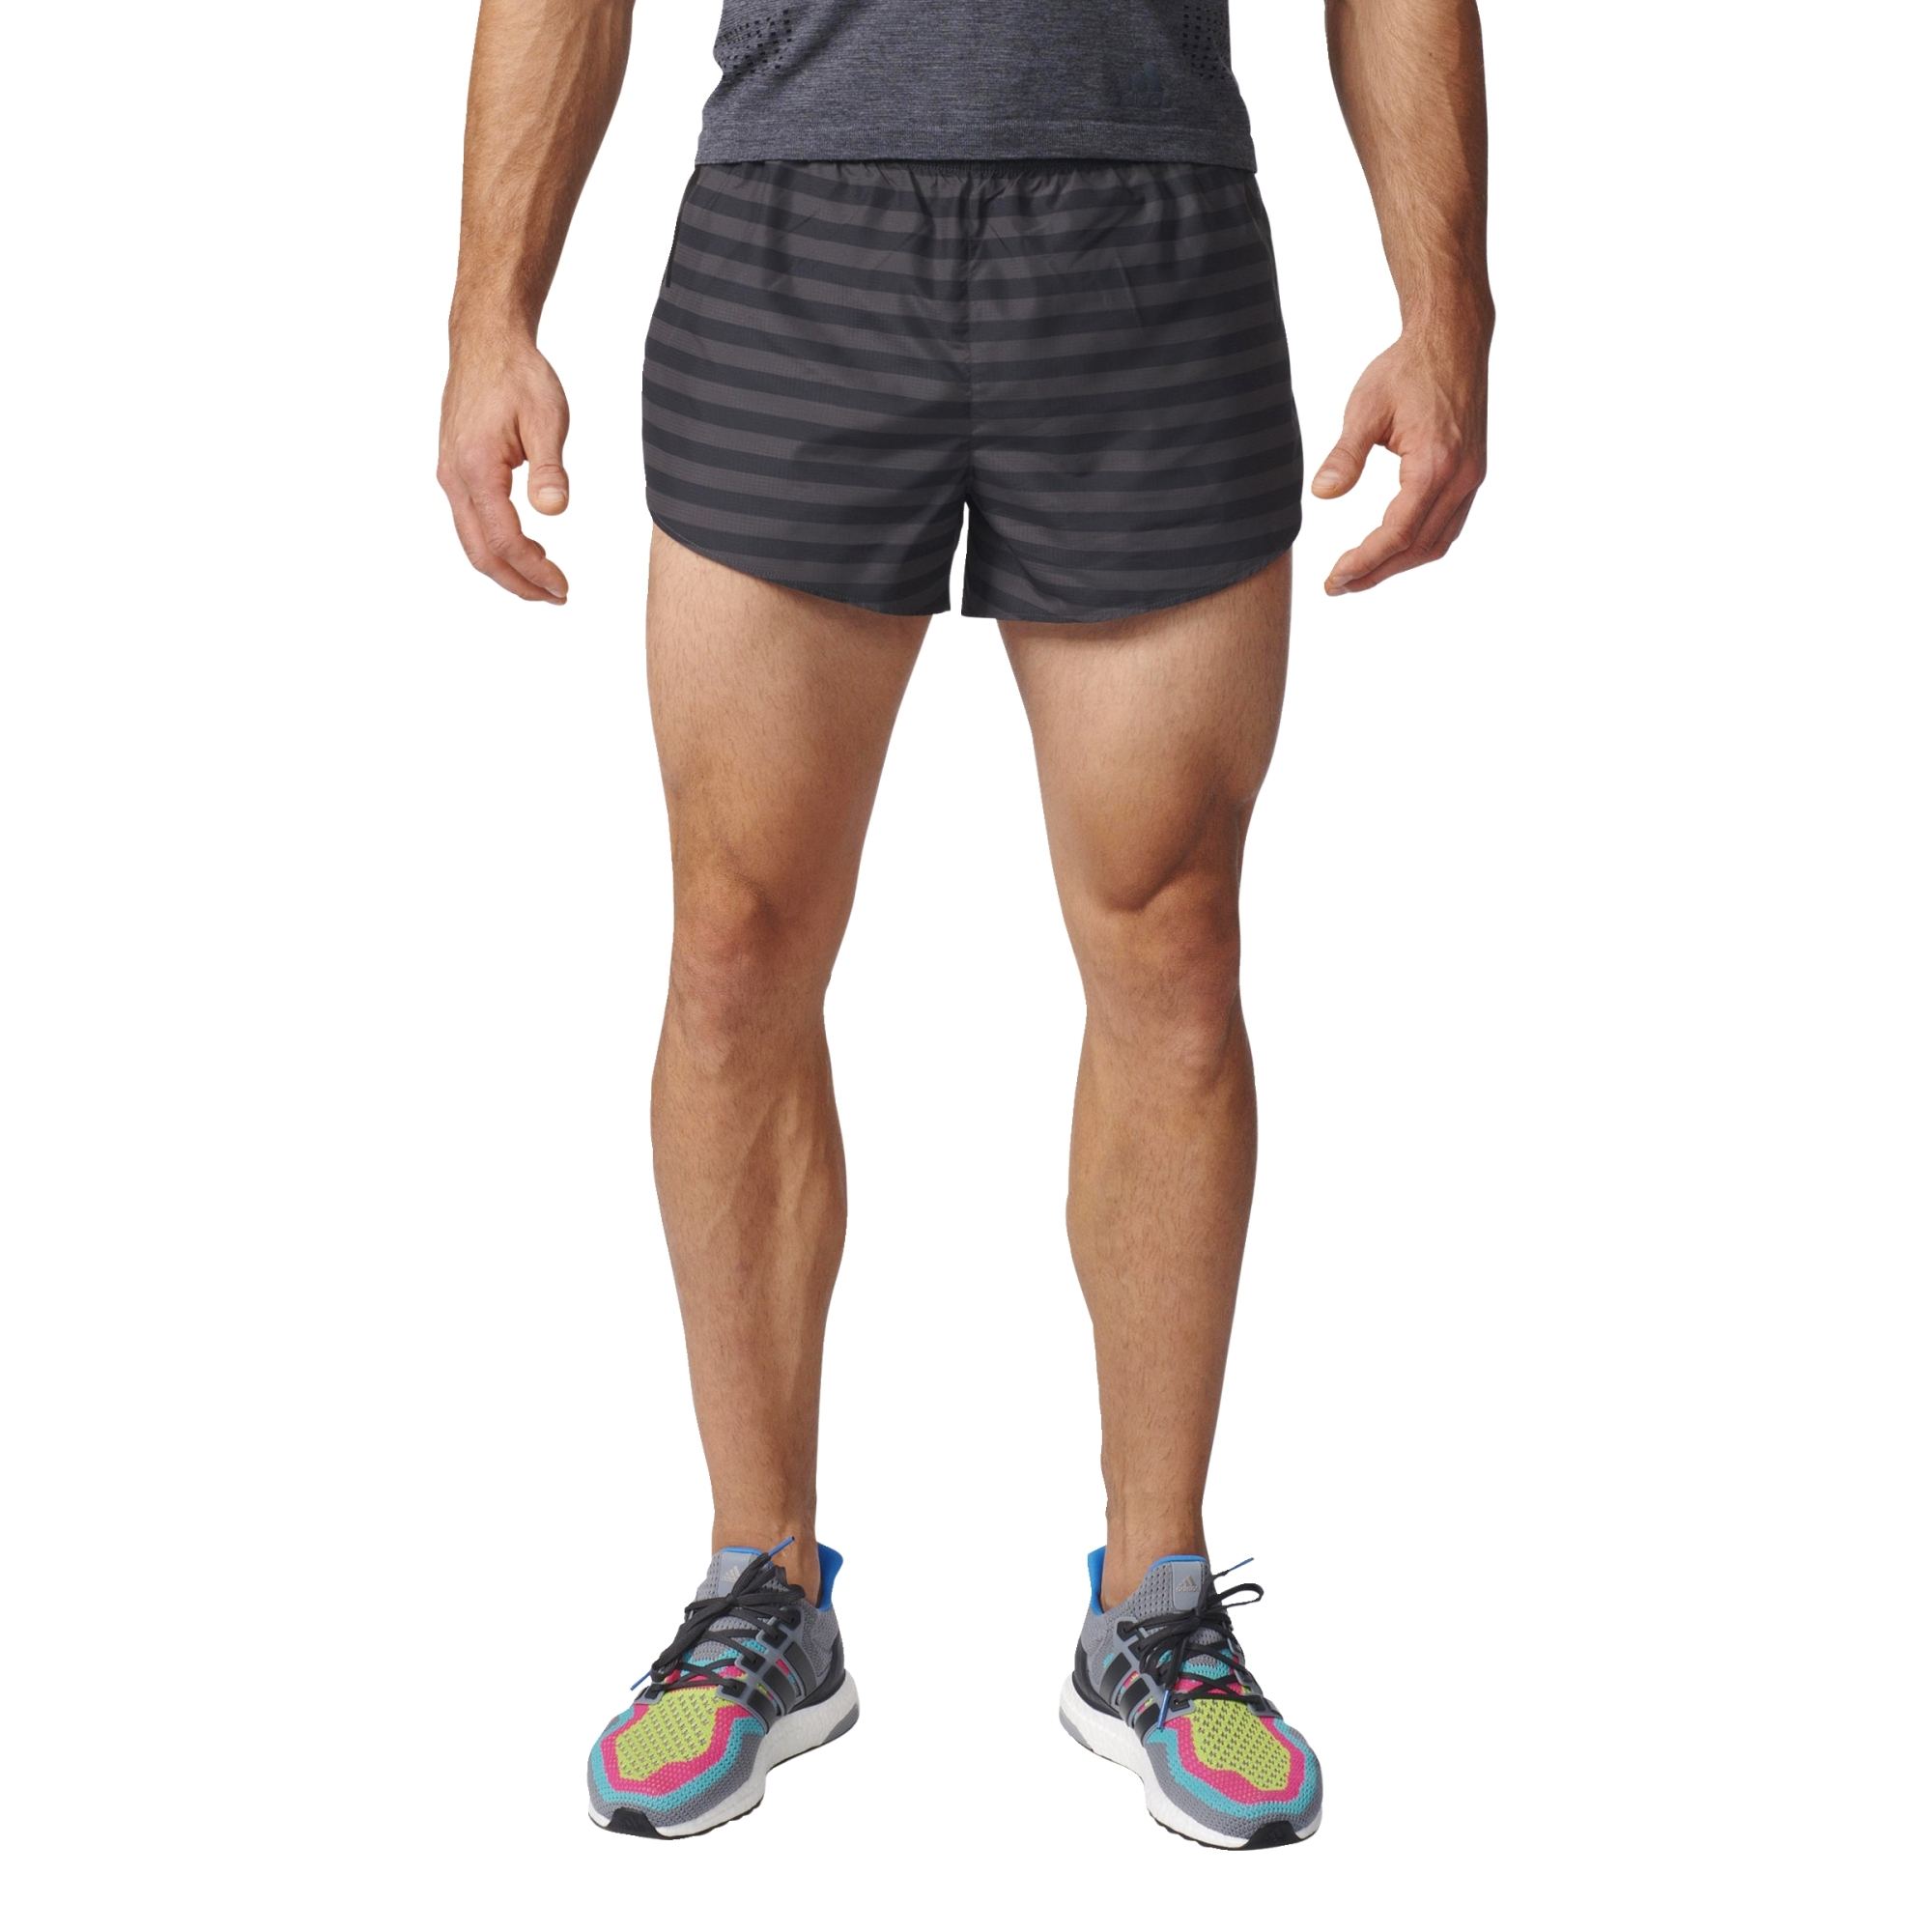 Adidas Adizero Mens Split Short